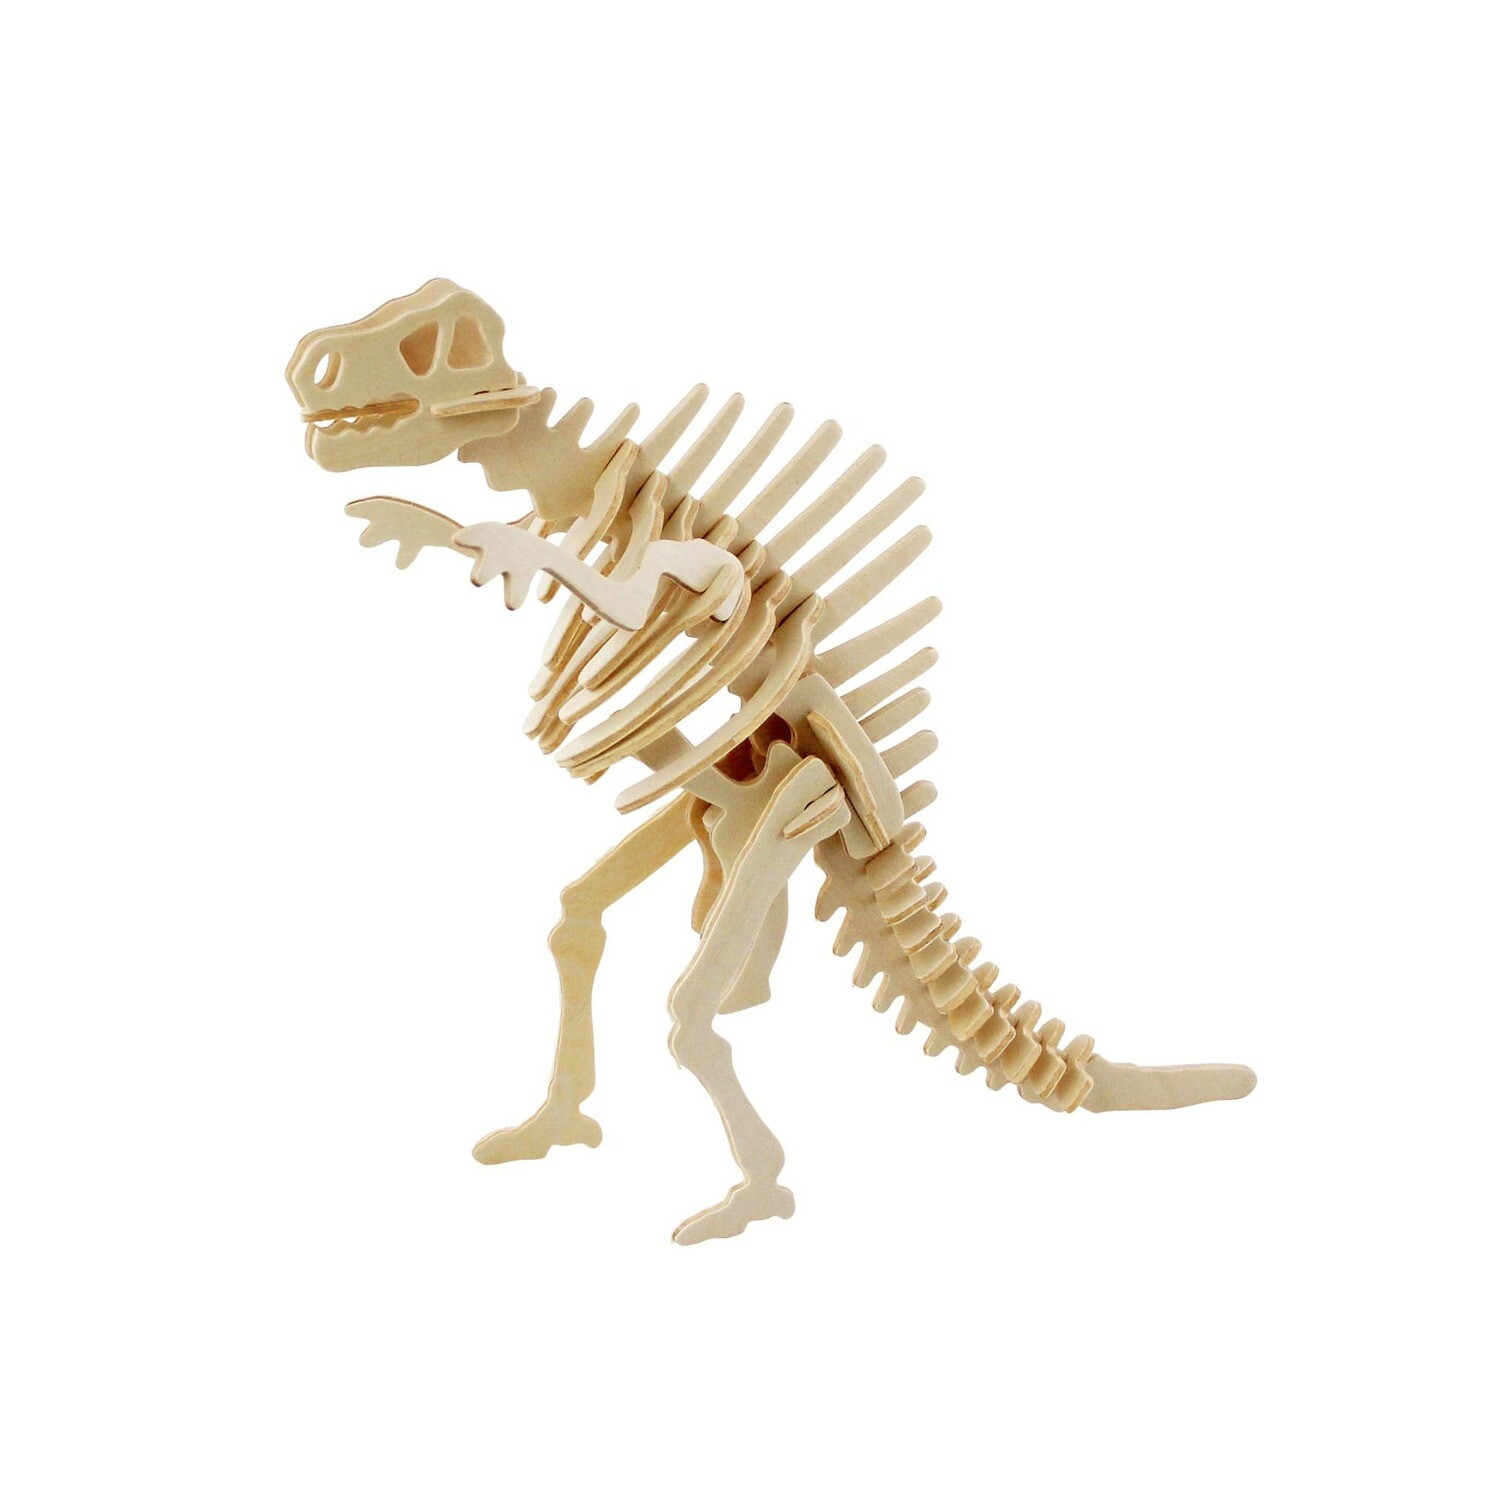 3D Wooden Puzzle: Spinosaurus